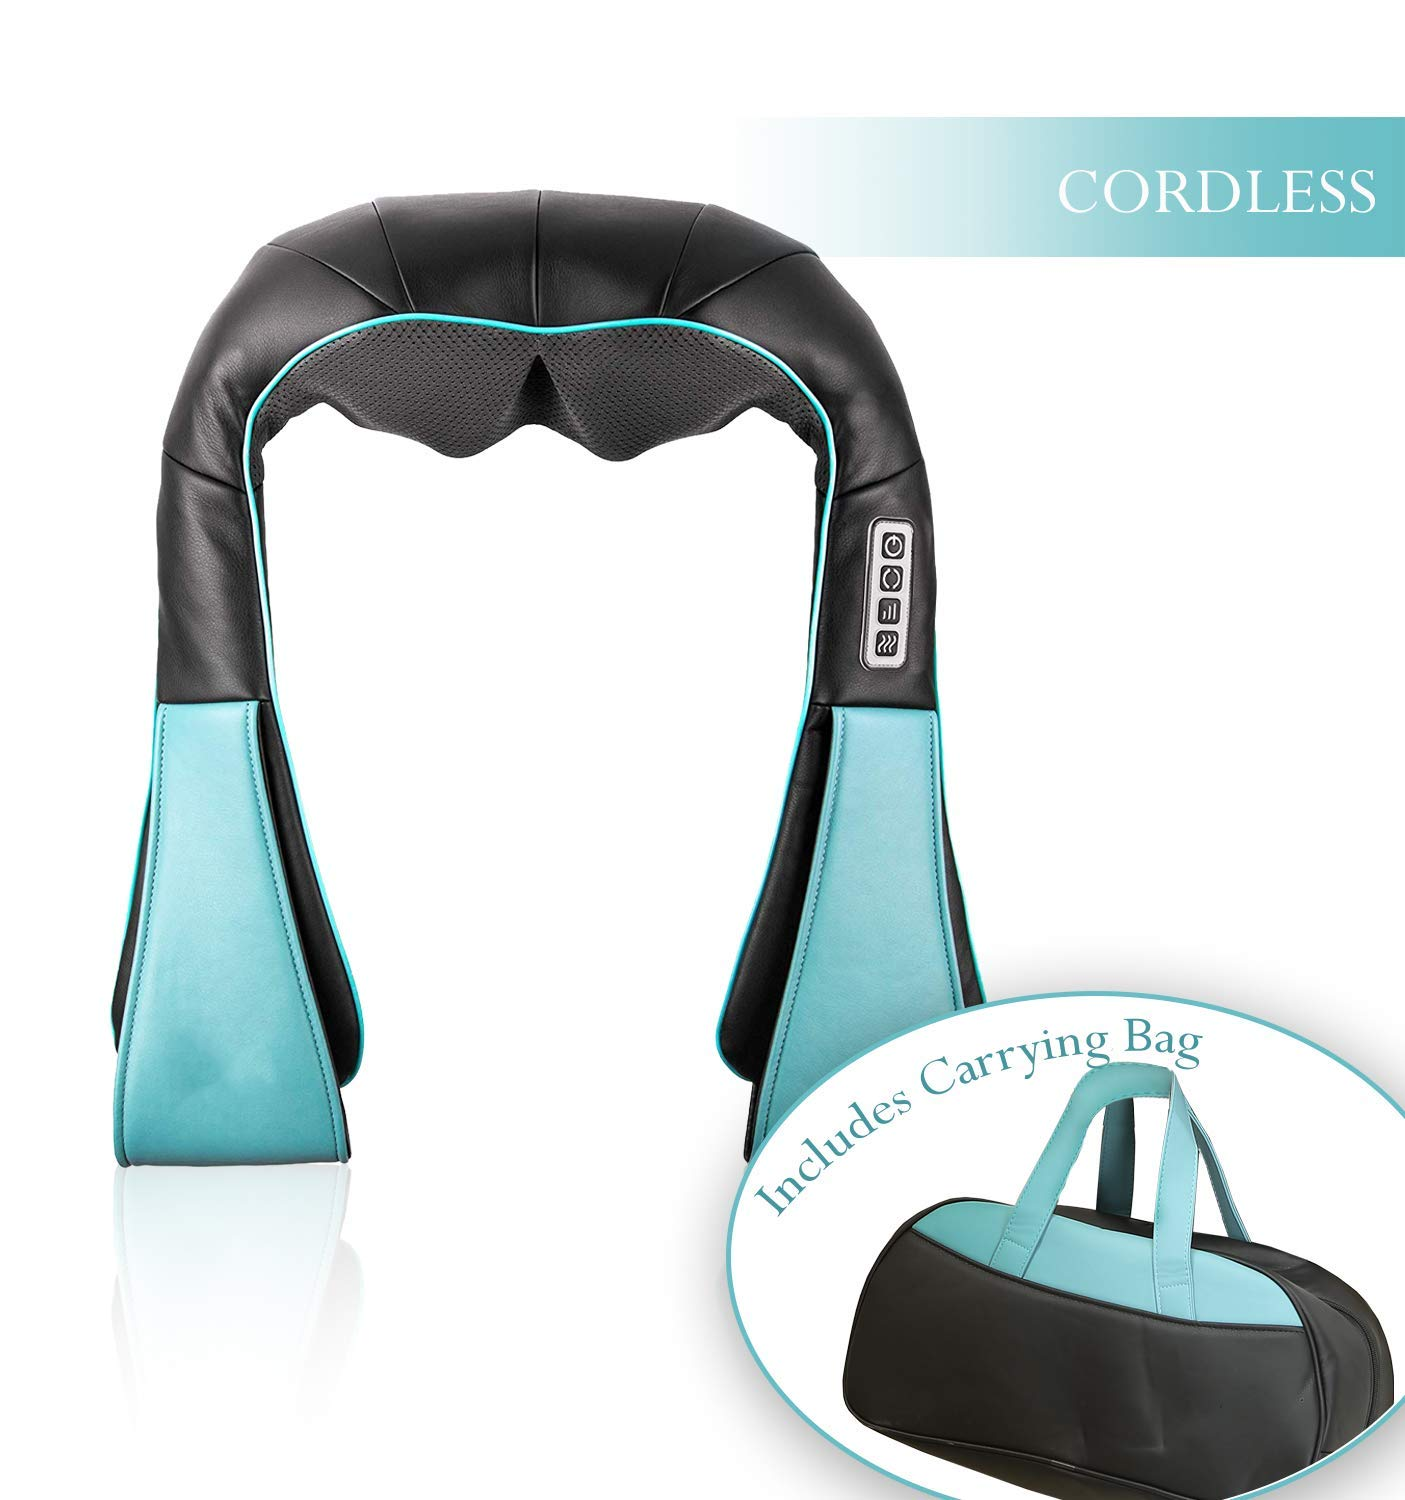 Cordless SHIATSU DEEP Tissue Neck KNEADING Massager with Heating Function Includes Carrying Bag Great for Neck, Back, Shoulder and More